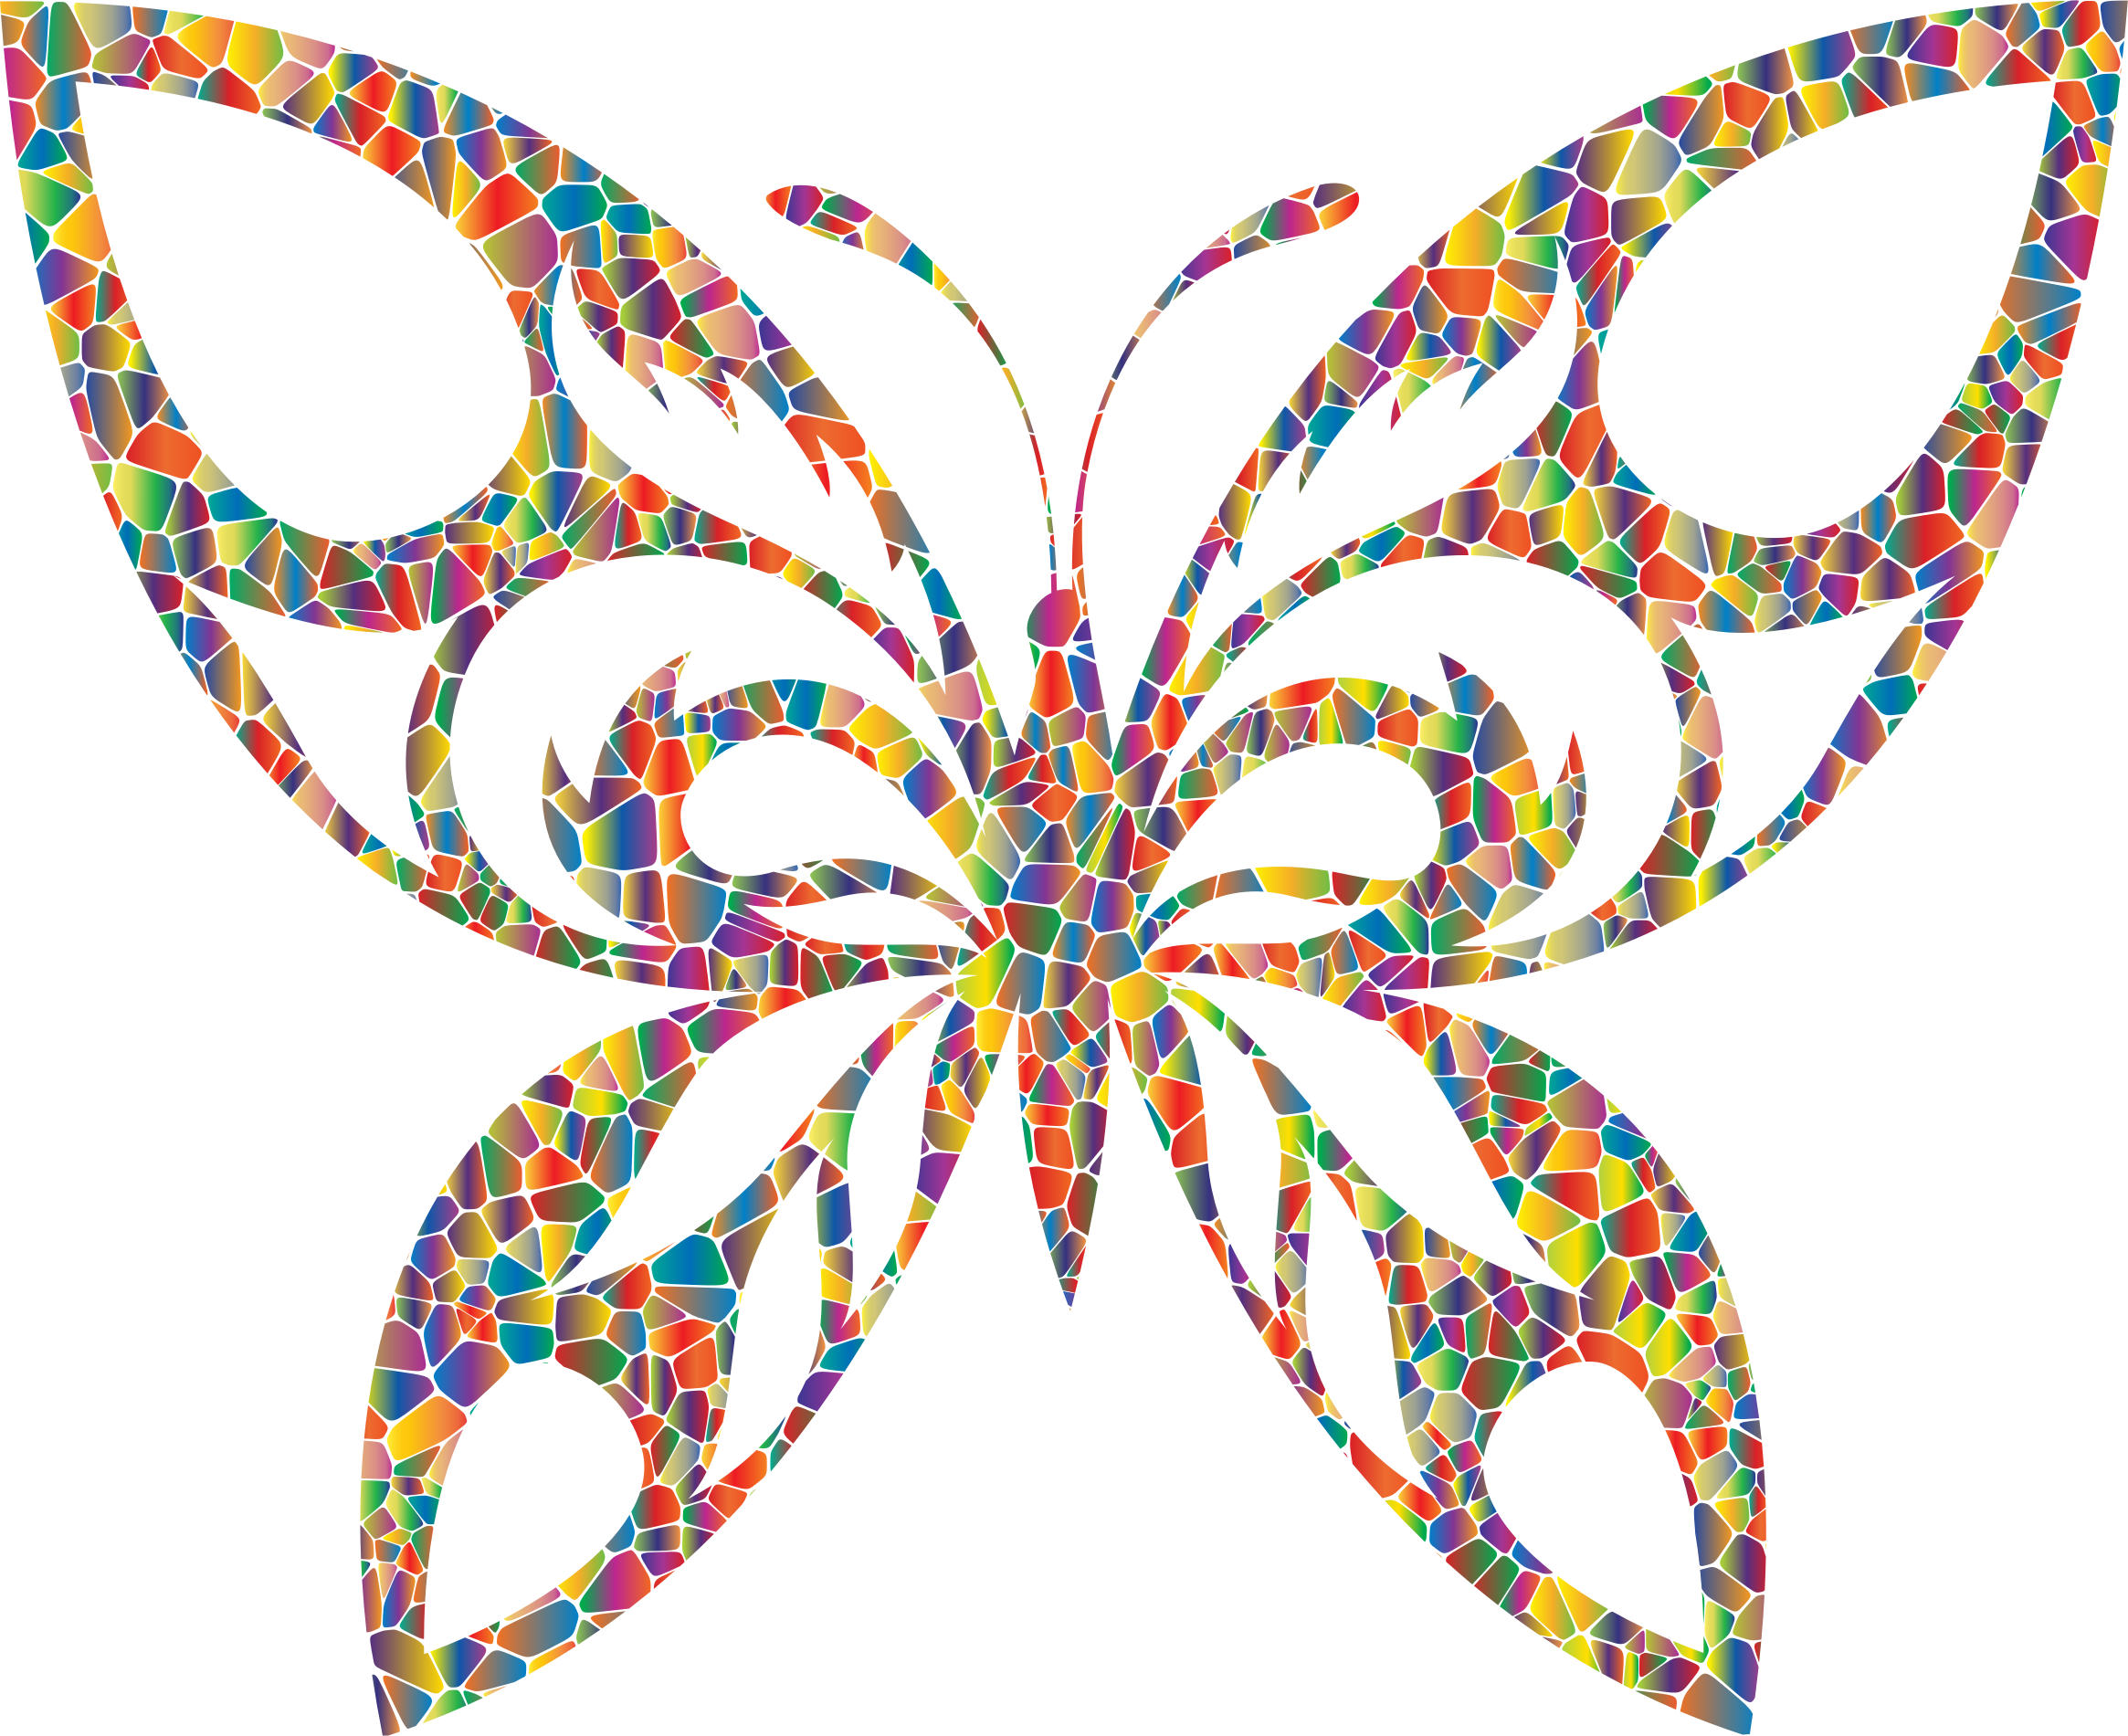 Polyprismatic Tiled Tribal Butterfly Silhouette by GDJ